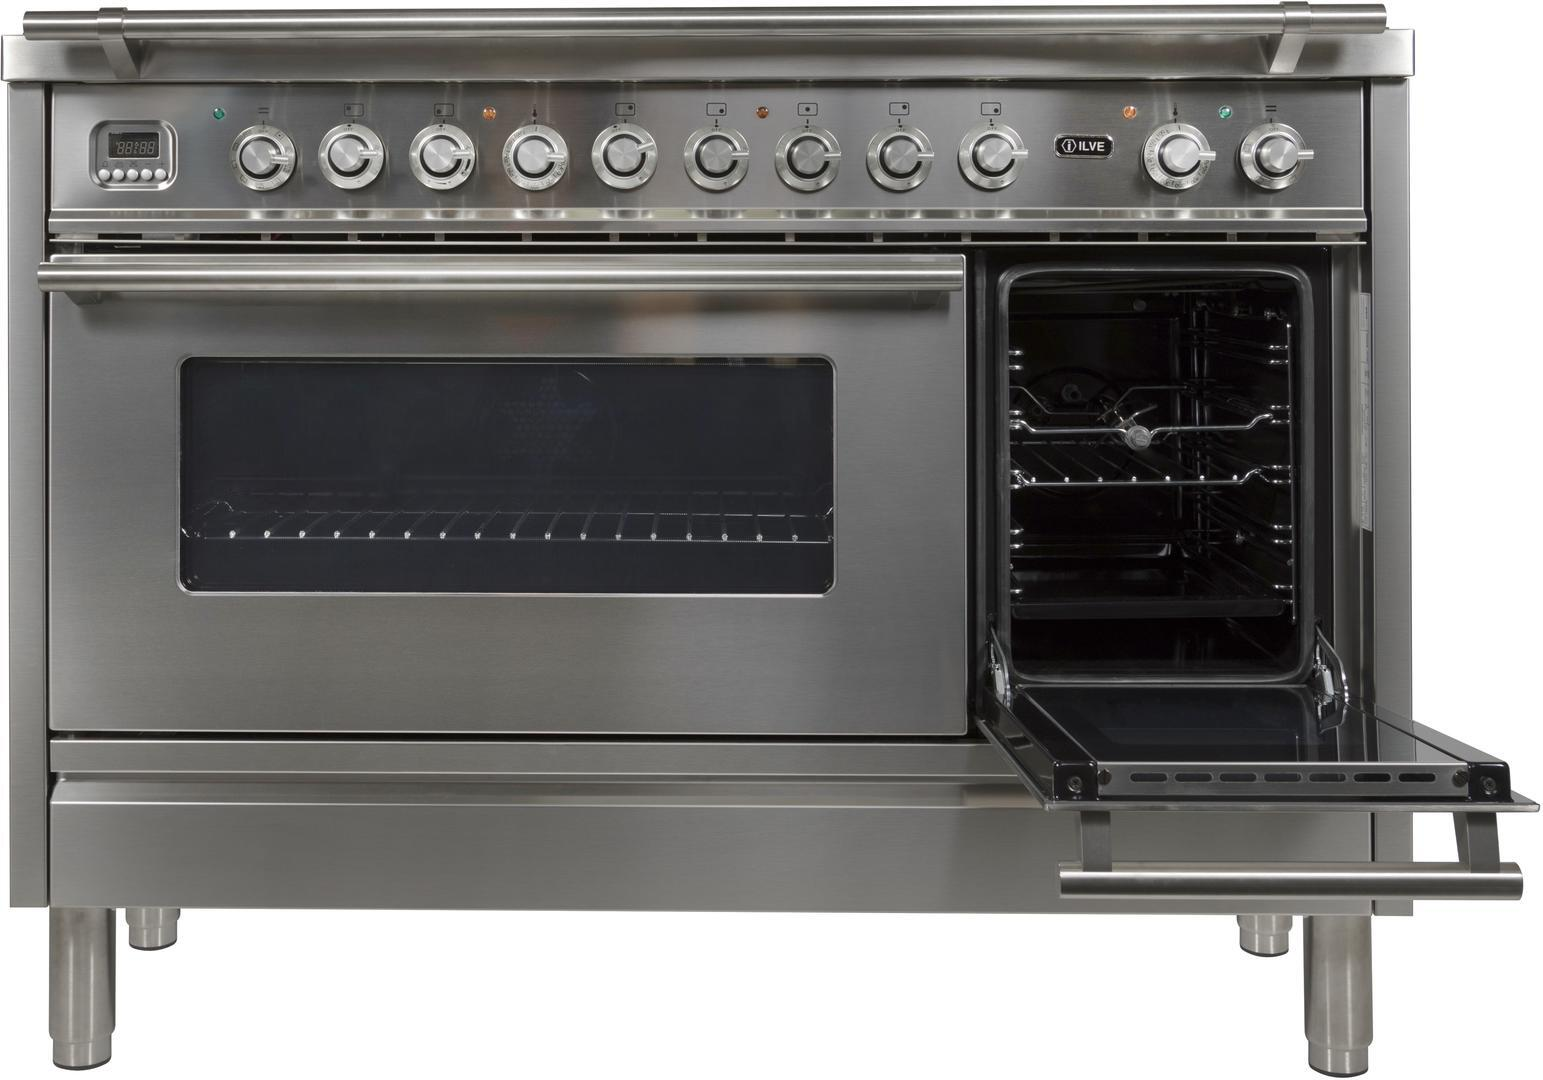 Ilve Professional Plus UPW120FDMPILP Freestanding Dual Fuel Range Stainless Steel, UPW120FDMPILP Secondary Door Opened